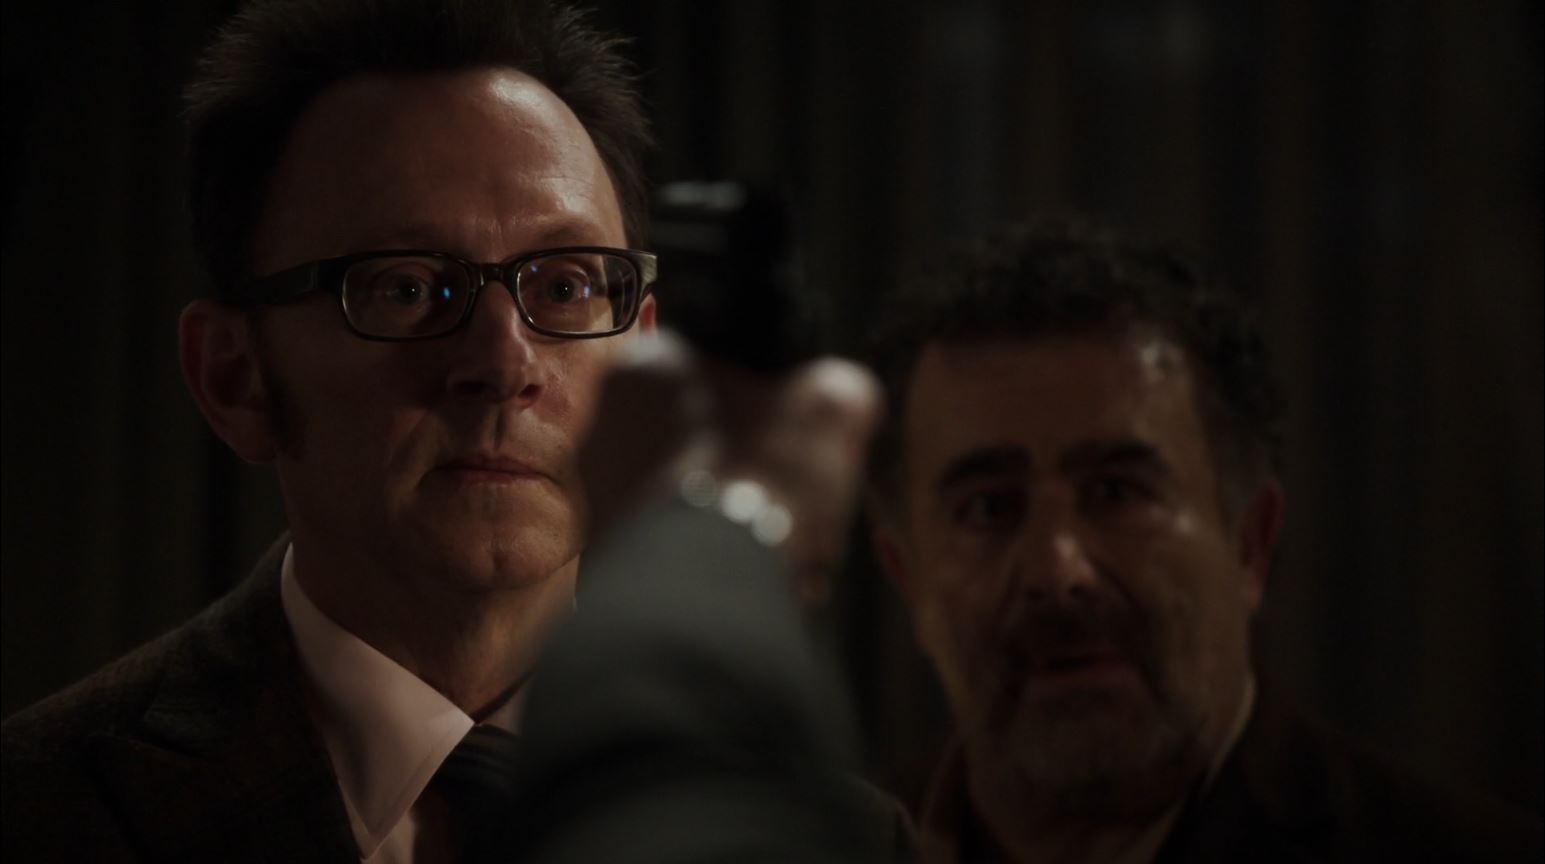 Person of Interest - Lethe - Time is up for Harold Finch  (Michael Emerson)